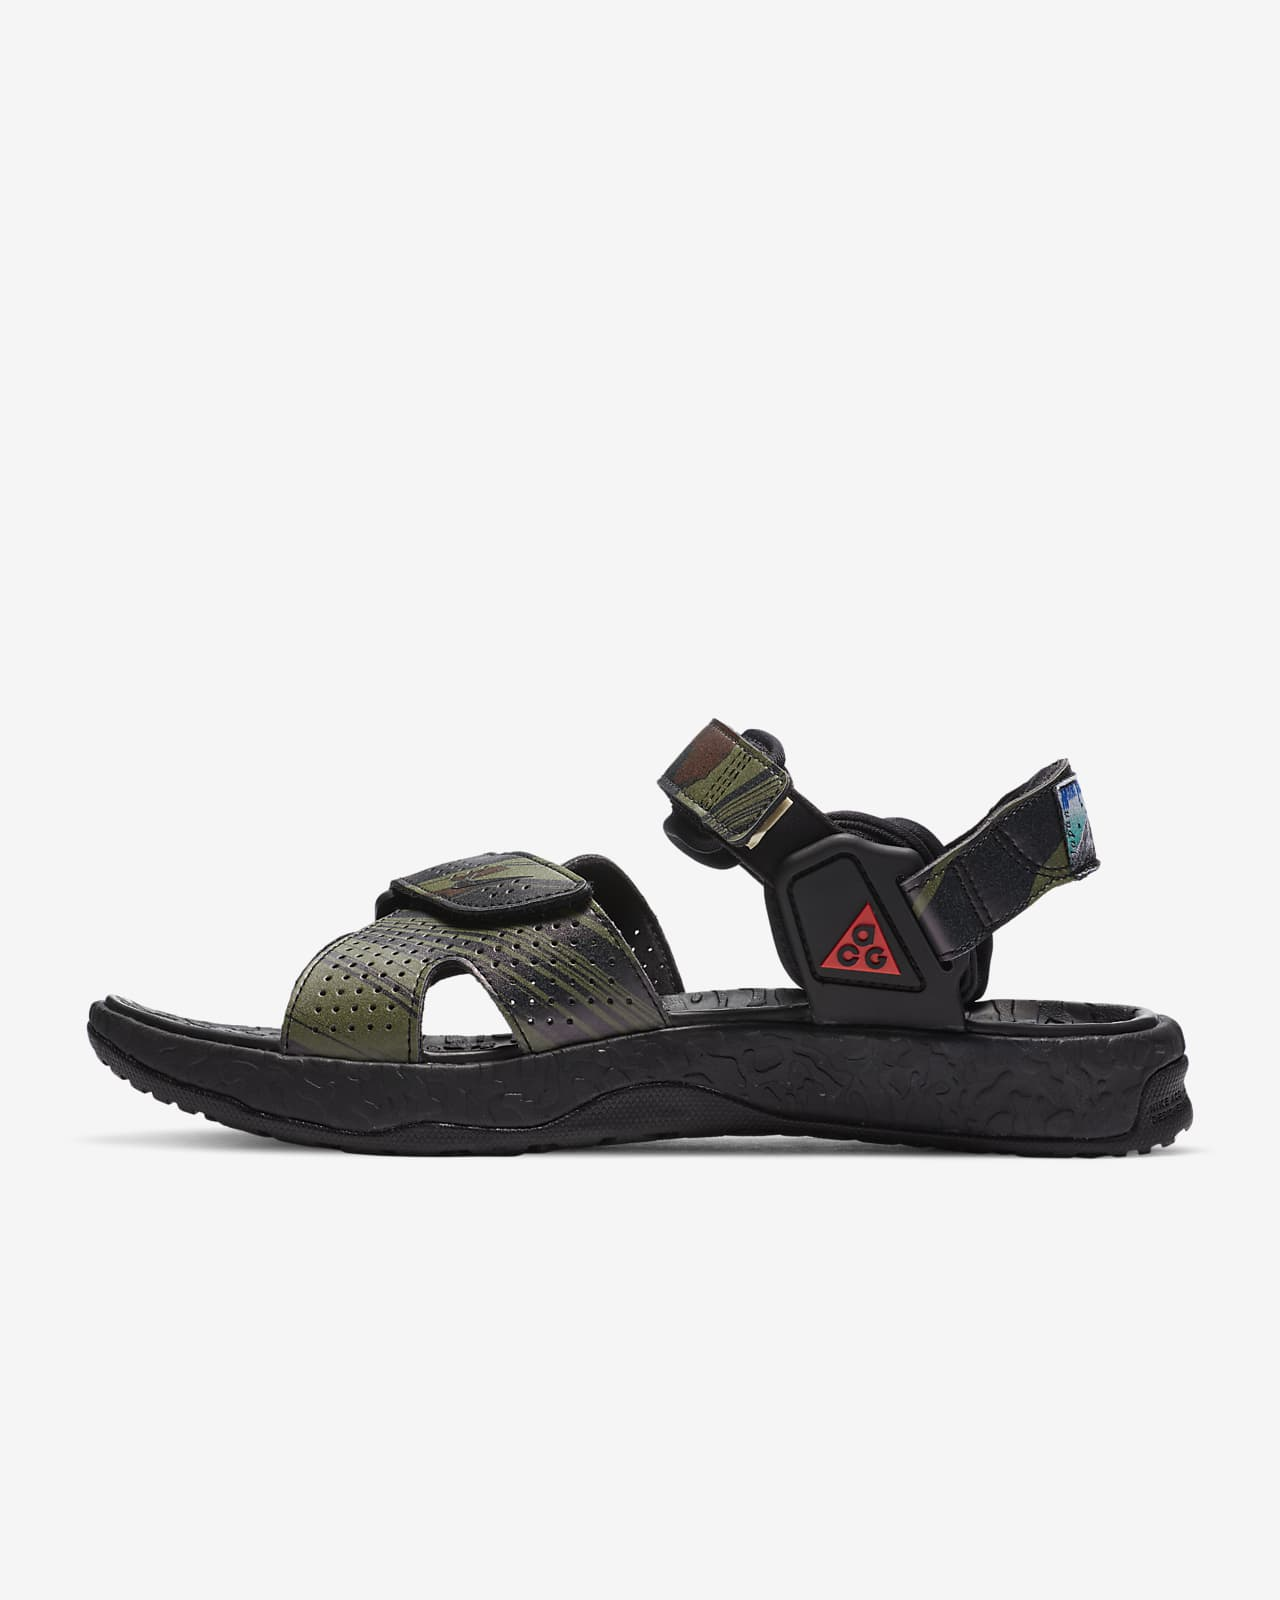 Nike ACG Deschutz Mt. Fuji Slipper